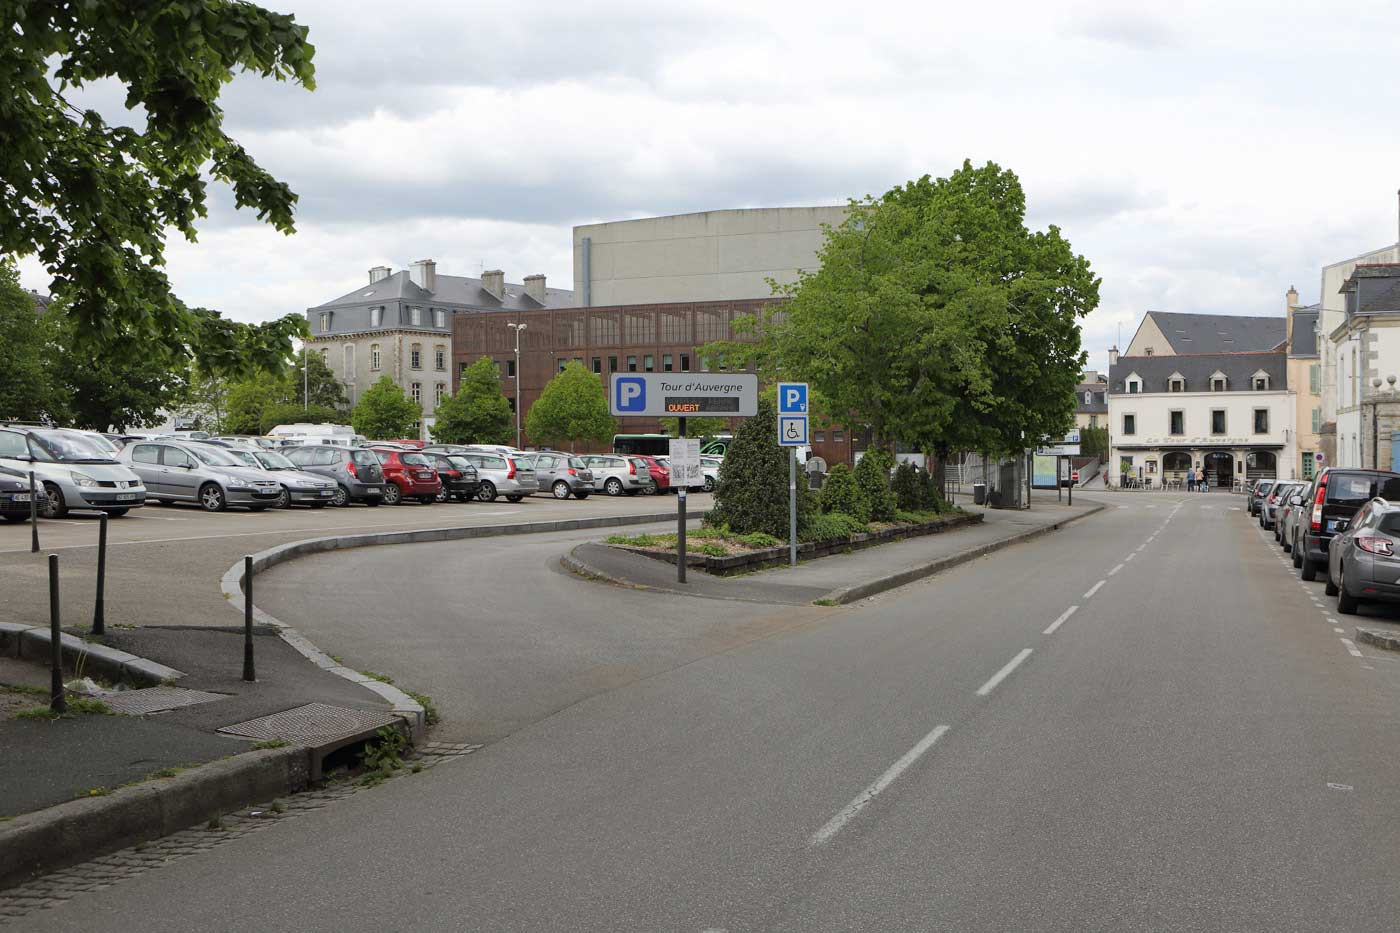 Stationnement et parkings ville de quimper for Piscine quimper